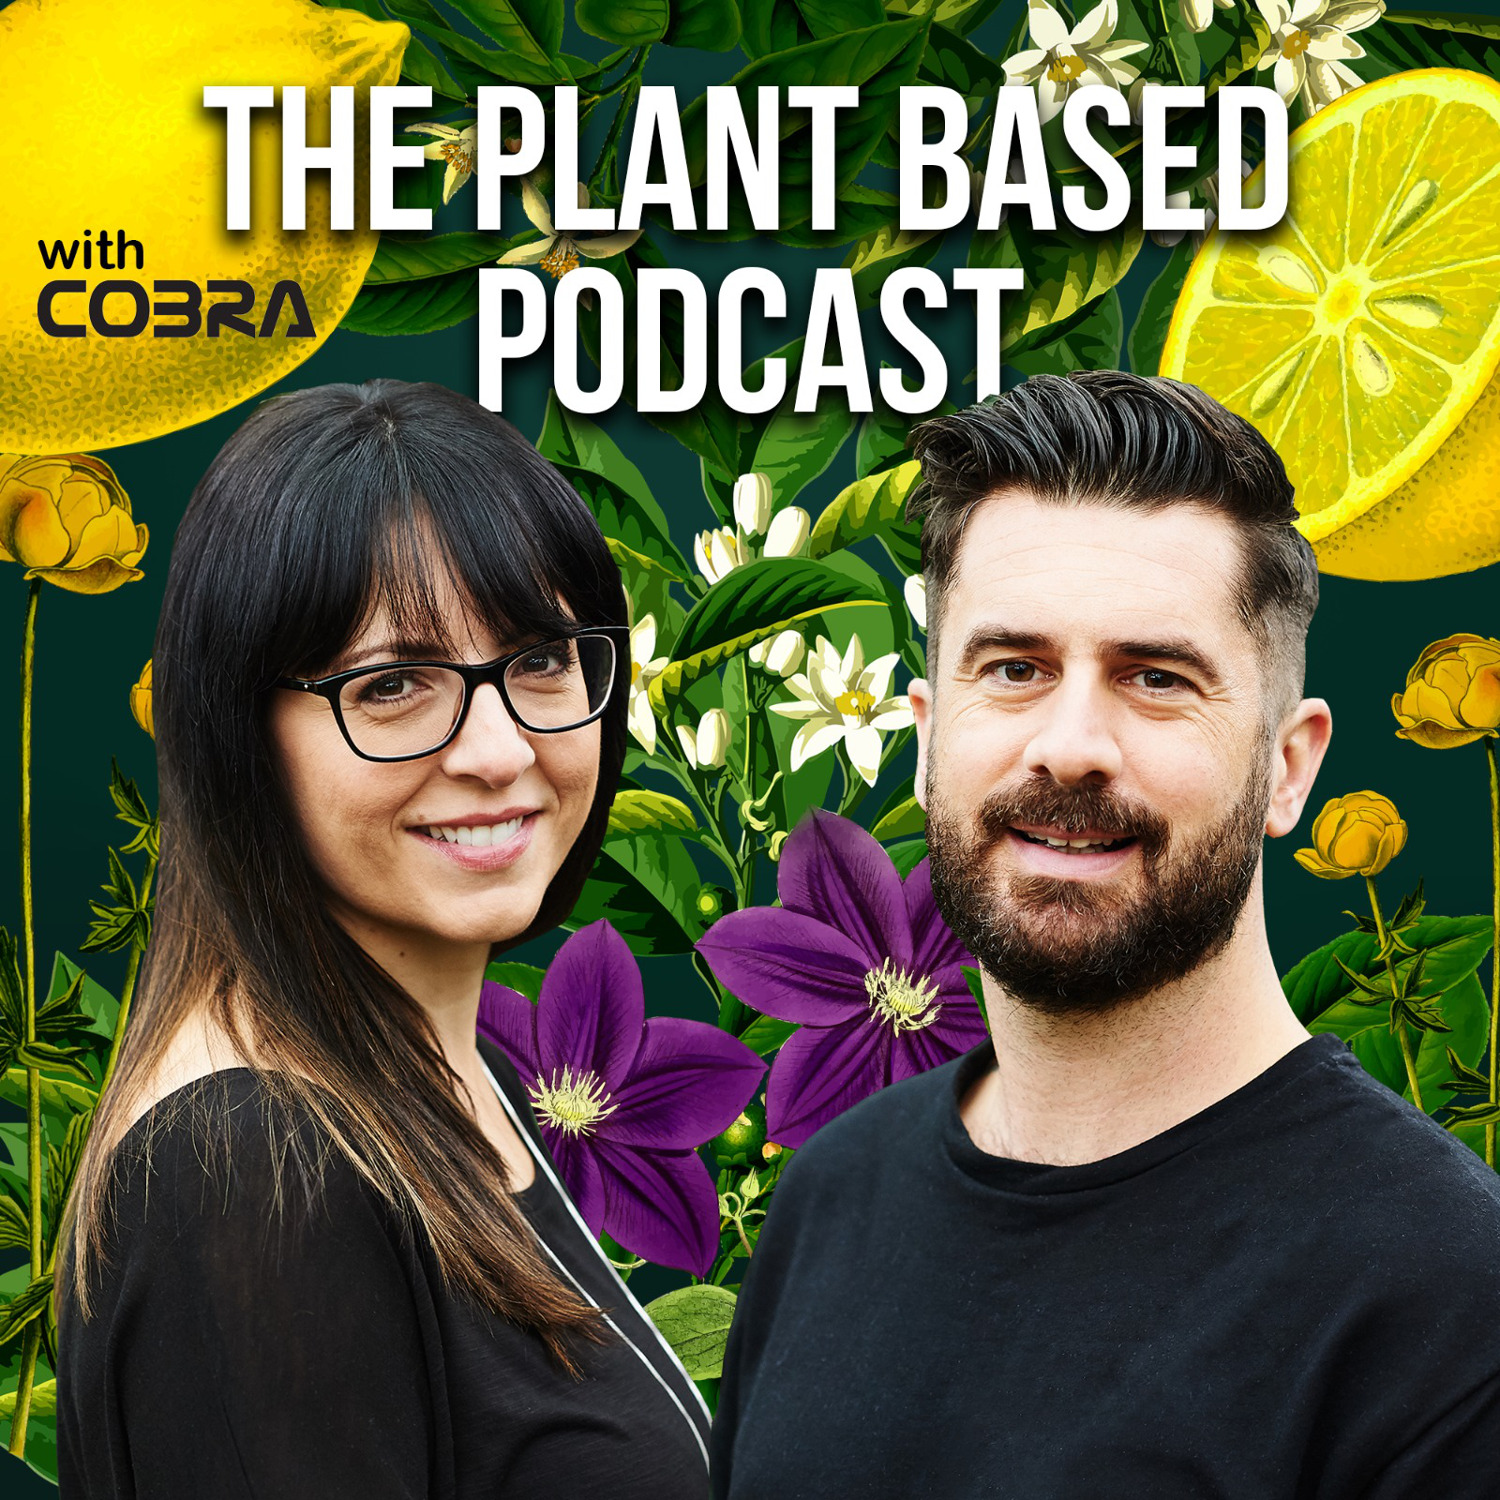 The Plant Based Podcast S4 Episode Eight - The breeding story of begonias